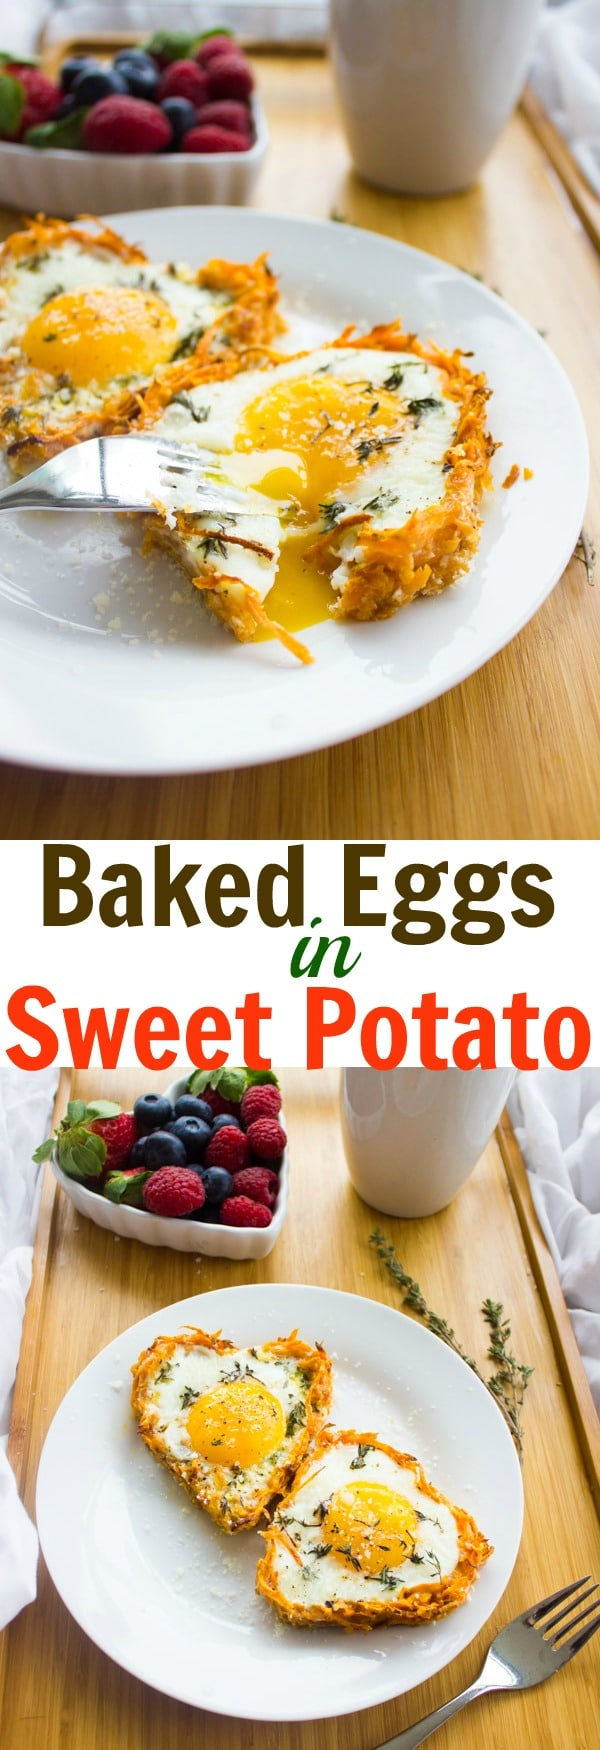 Baked Eggs in Sweet Potatoes / This recipe for Baked Eggs in Sweet Potato Crusts is lusciously delicious, super easy, healthy and takes only 15 minutes to make! Serve it on Valentine's Day for breakfast in bed or make it for a cozy holiday morning brunch. #breakfastrecipes, #bakedeggs, #brunchrecipes, #healthybreakfast